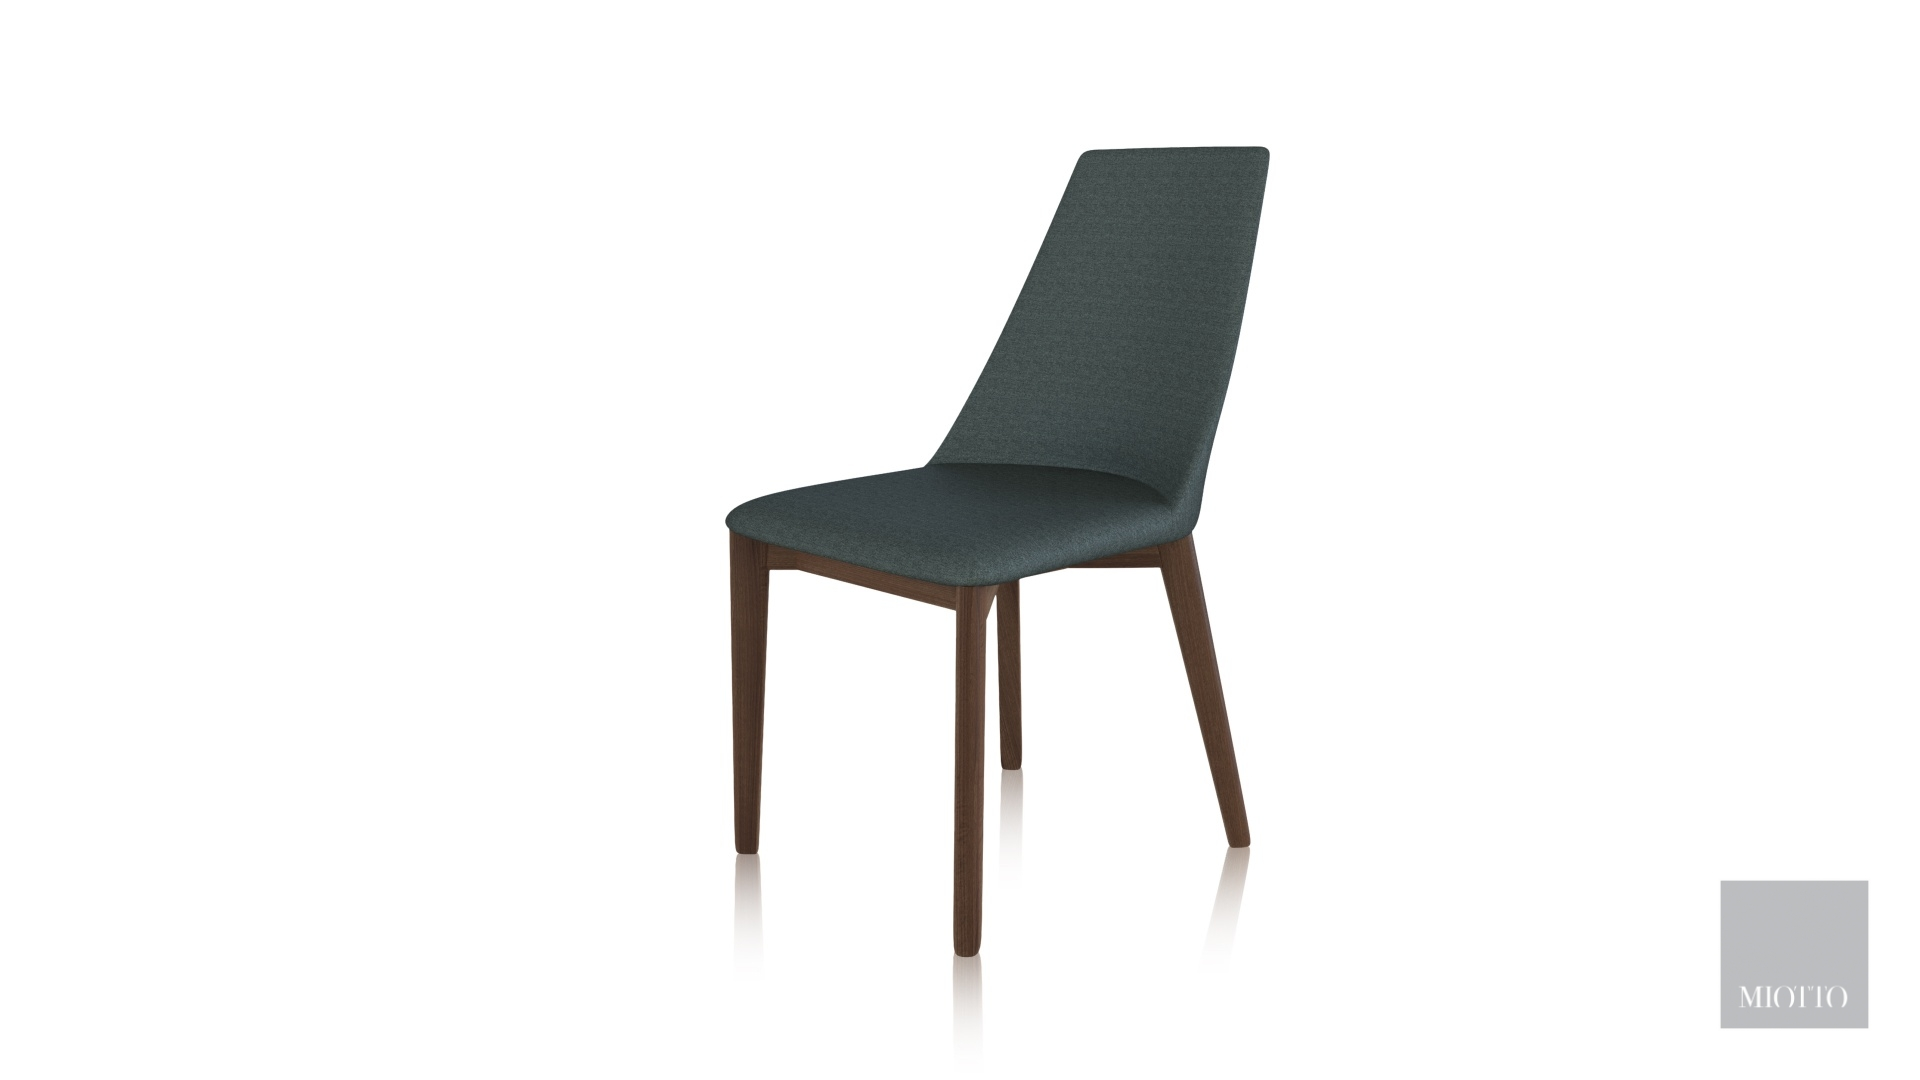 miotto_romolo DC dark grey front T miotto dining chair furniture